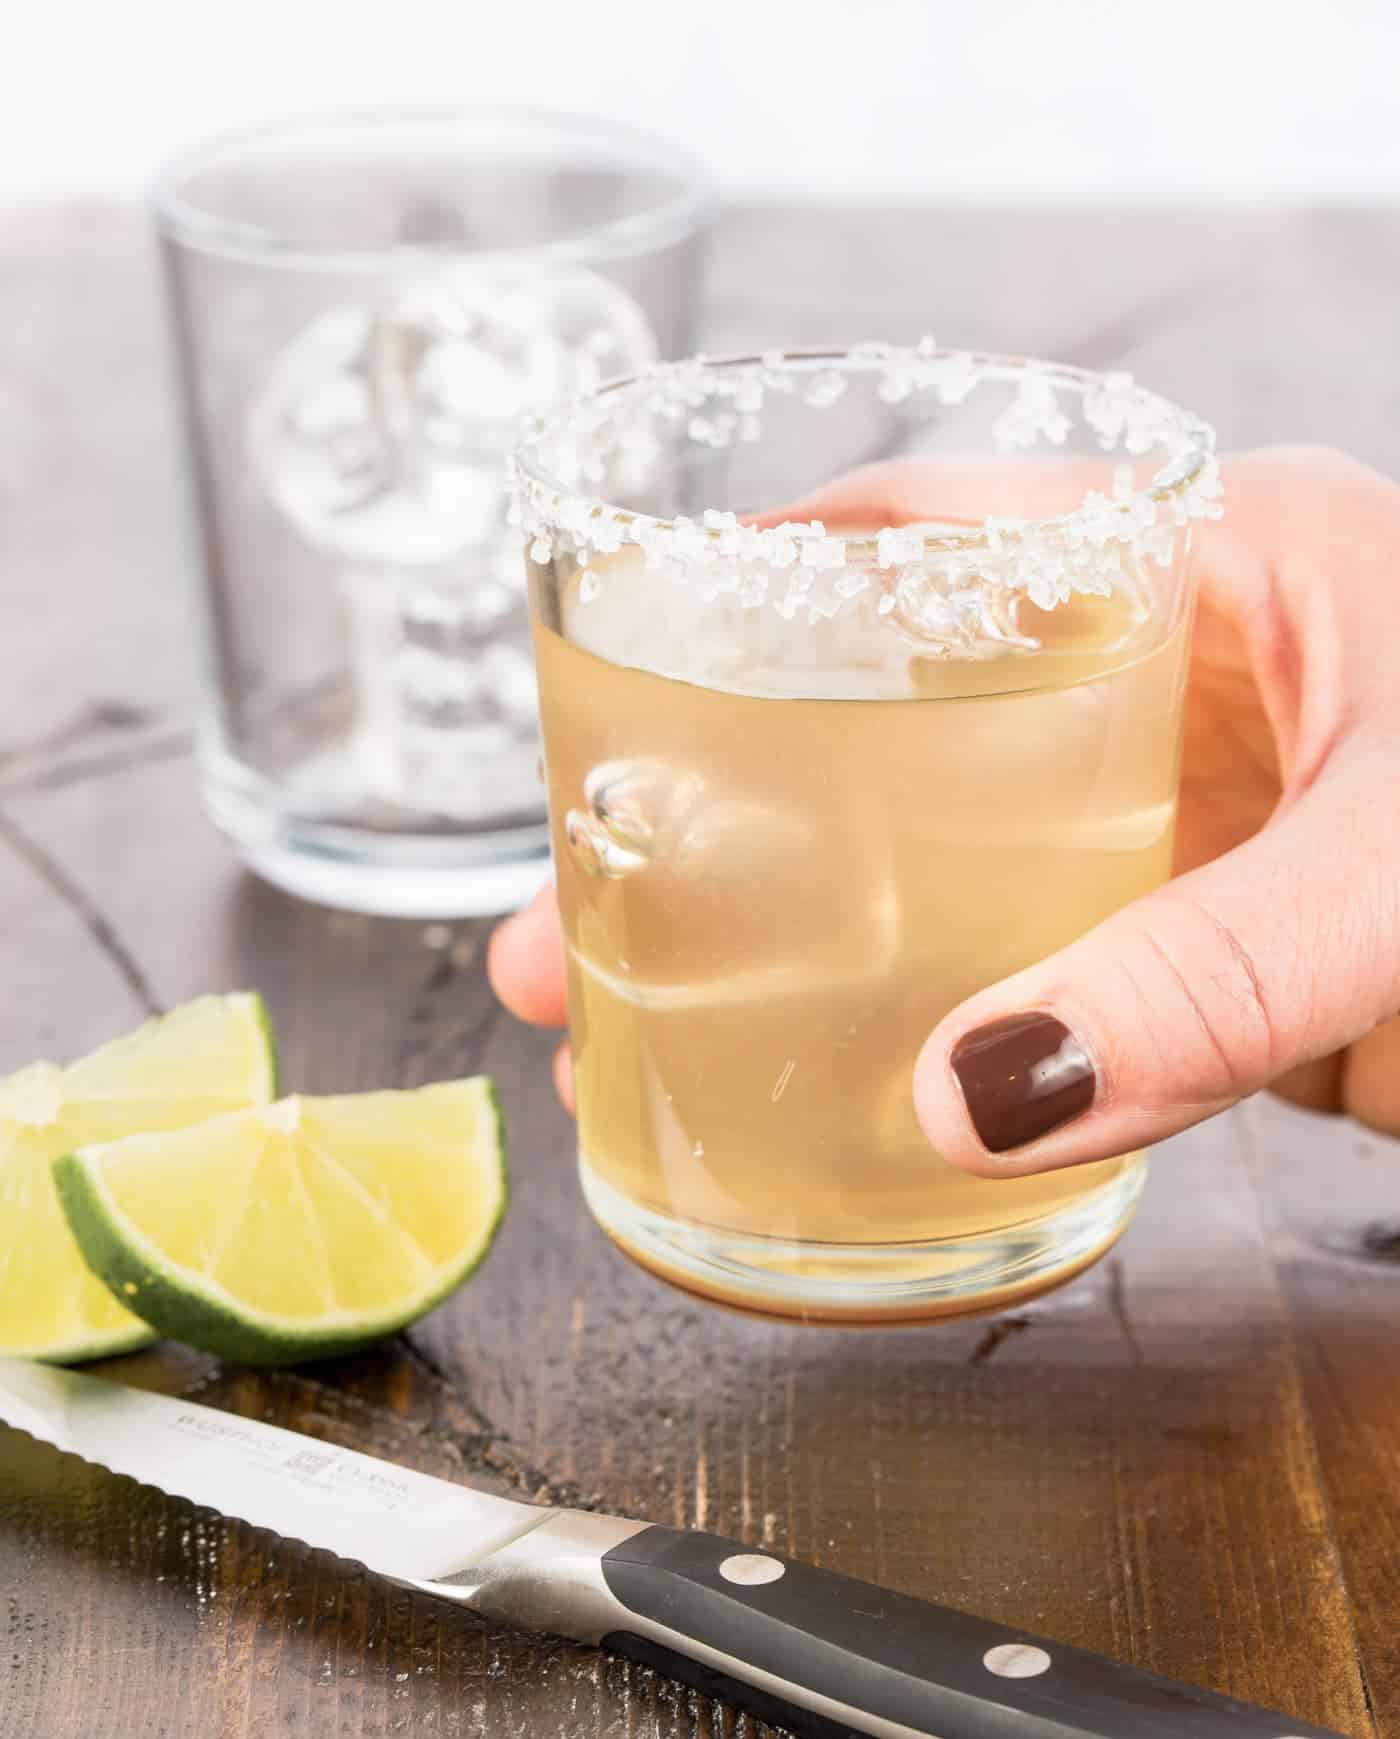 This 3-ingredient Elderflower Margarita makes perfect batch cocktails for your summer parties on the deck. We were so surprised (and thrilled) at how well elderflower liqueur and tequila go together. This easy cocktail is a must try!